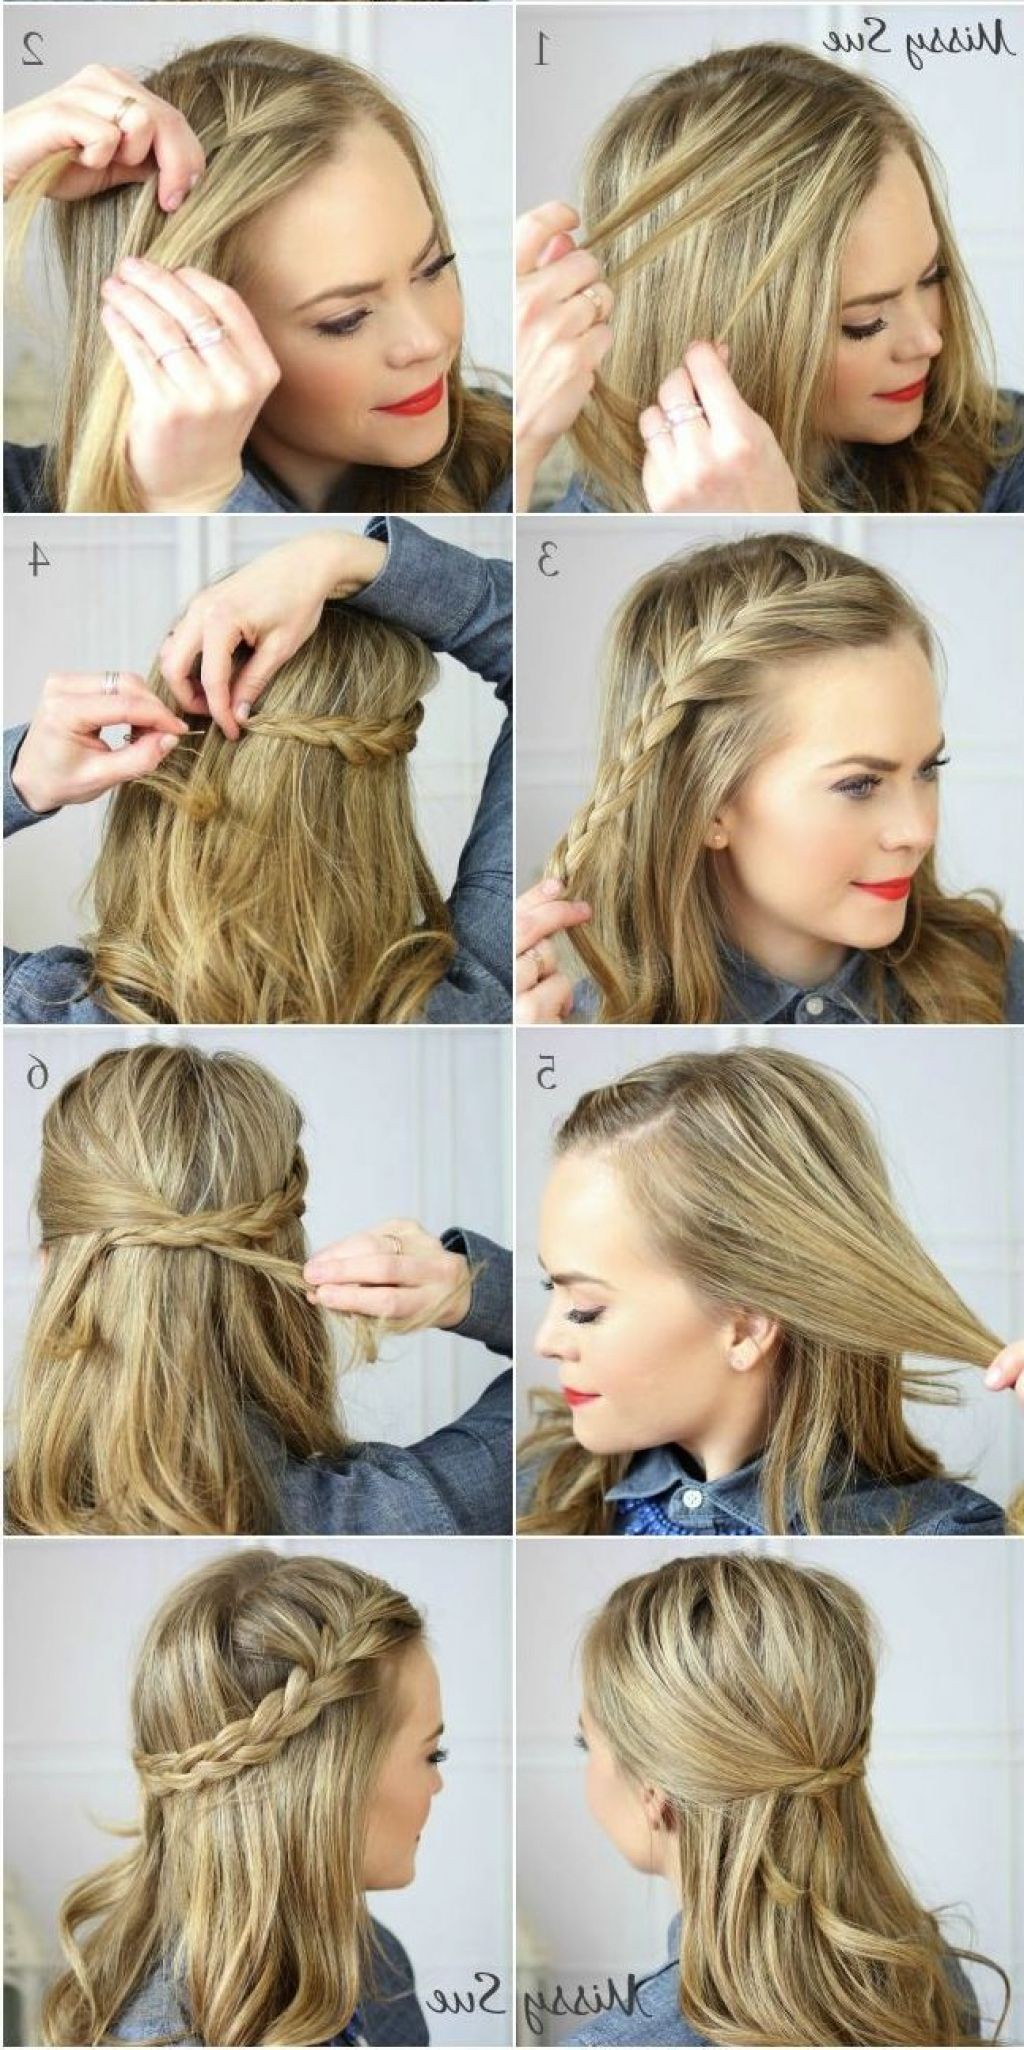 11 Best Formal Hairstyles For Shoulder Length Hair - Hairstyles